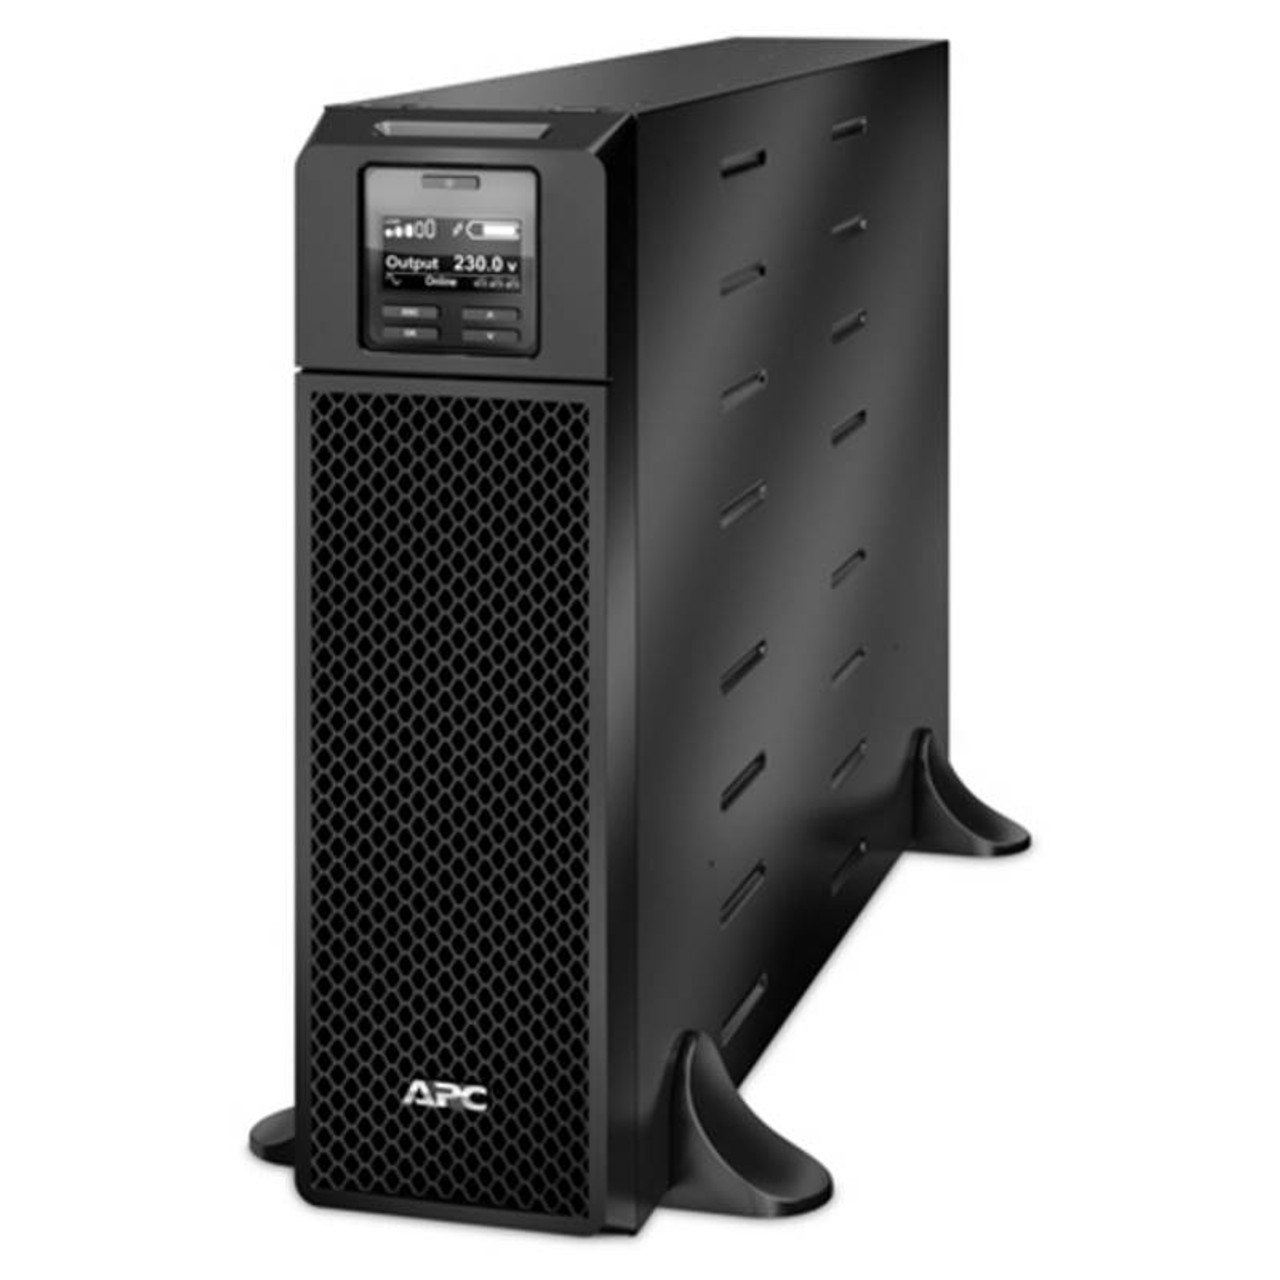 Image for APC SRT5KXLI SRT 5000VA 230V Sinewave Smart UPS CX Computer Superstore